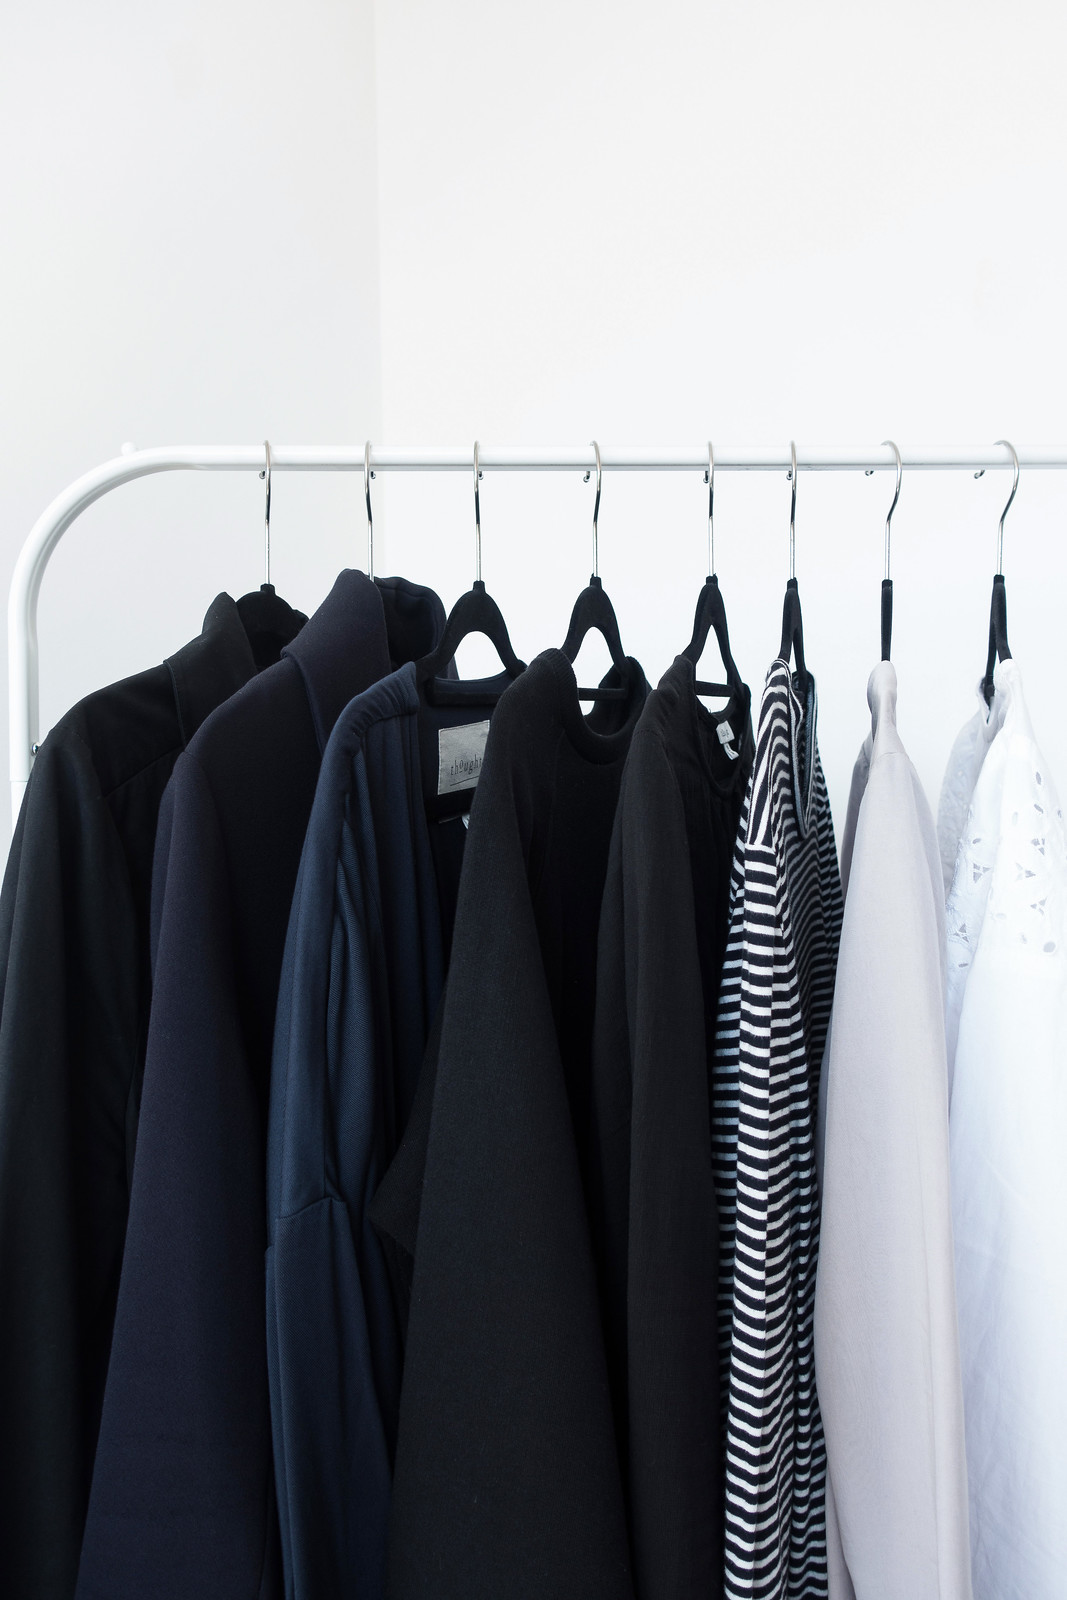 Creating A Go-To List Of Brands For Your Wardrobe